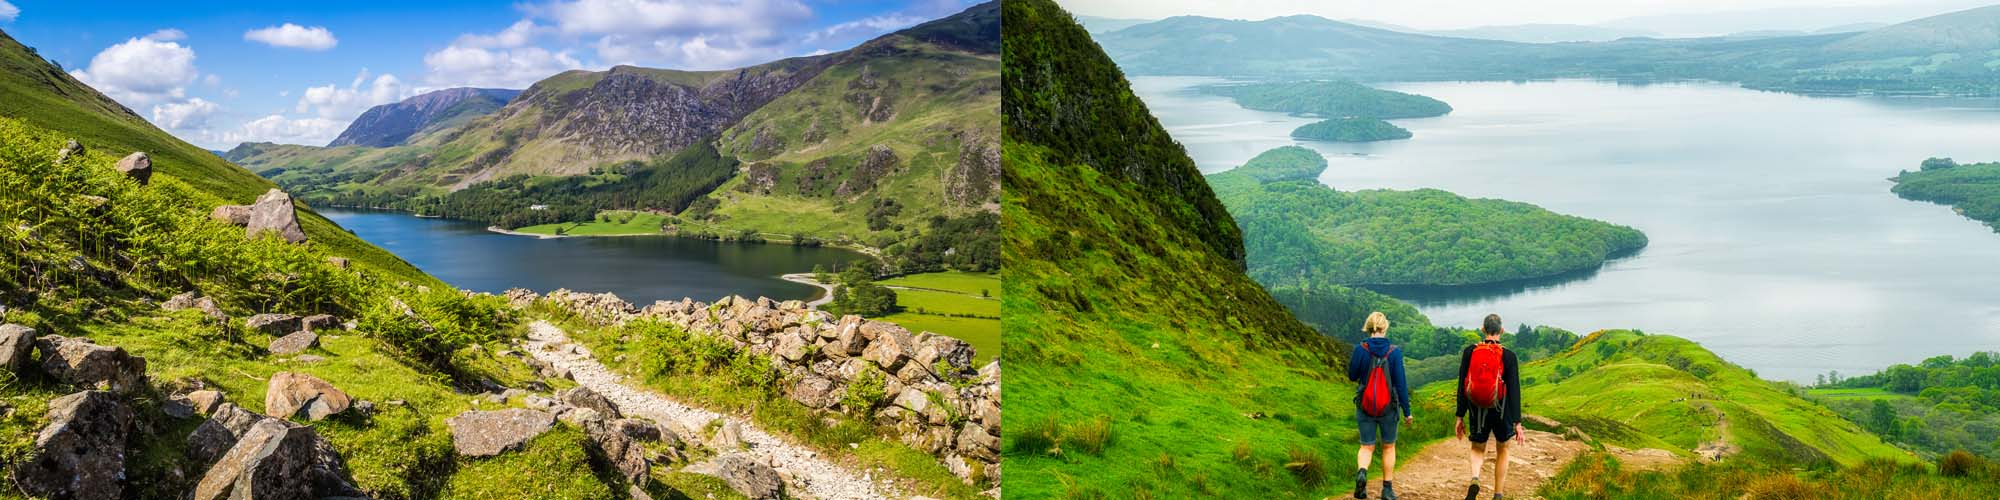 15 Day England's Coast to Coast plus Scottish Highlands